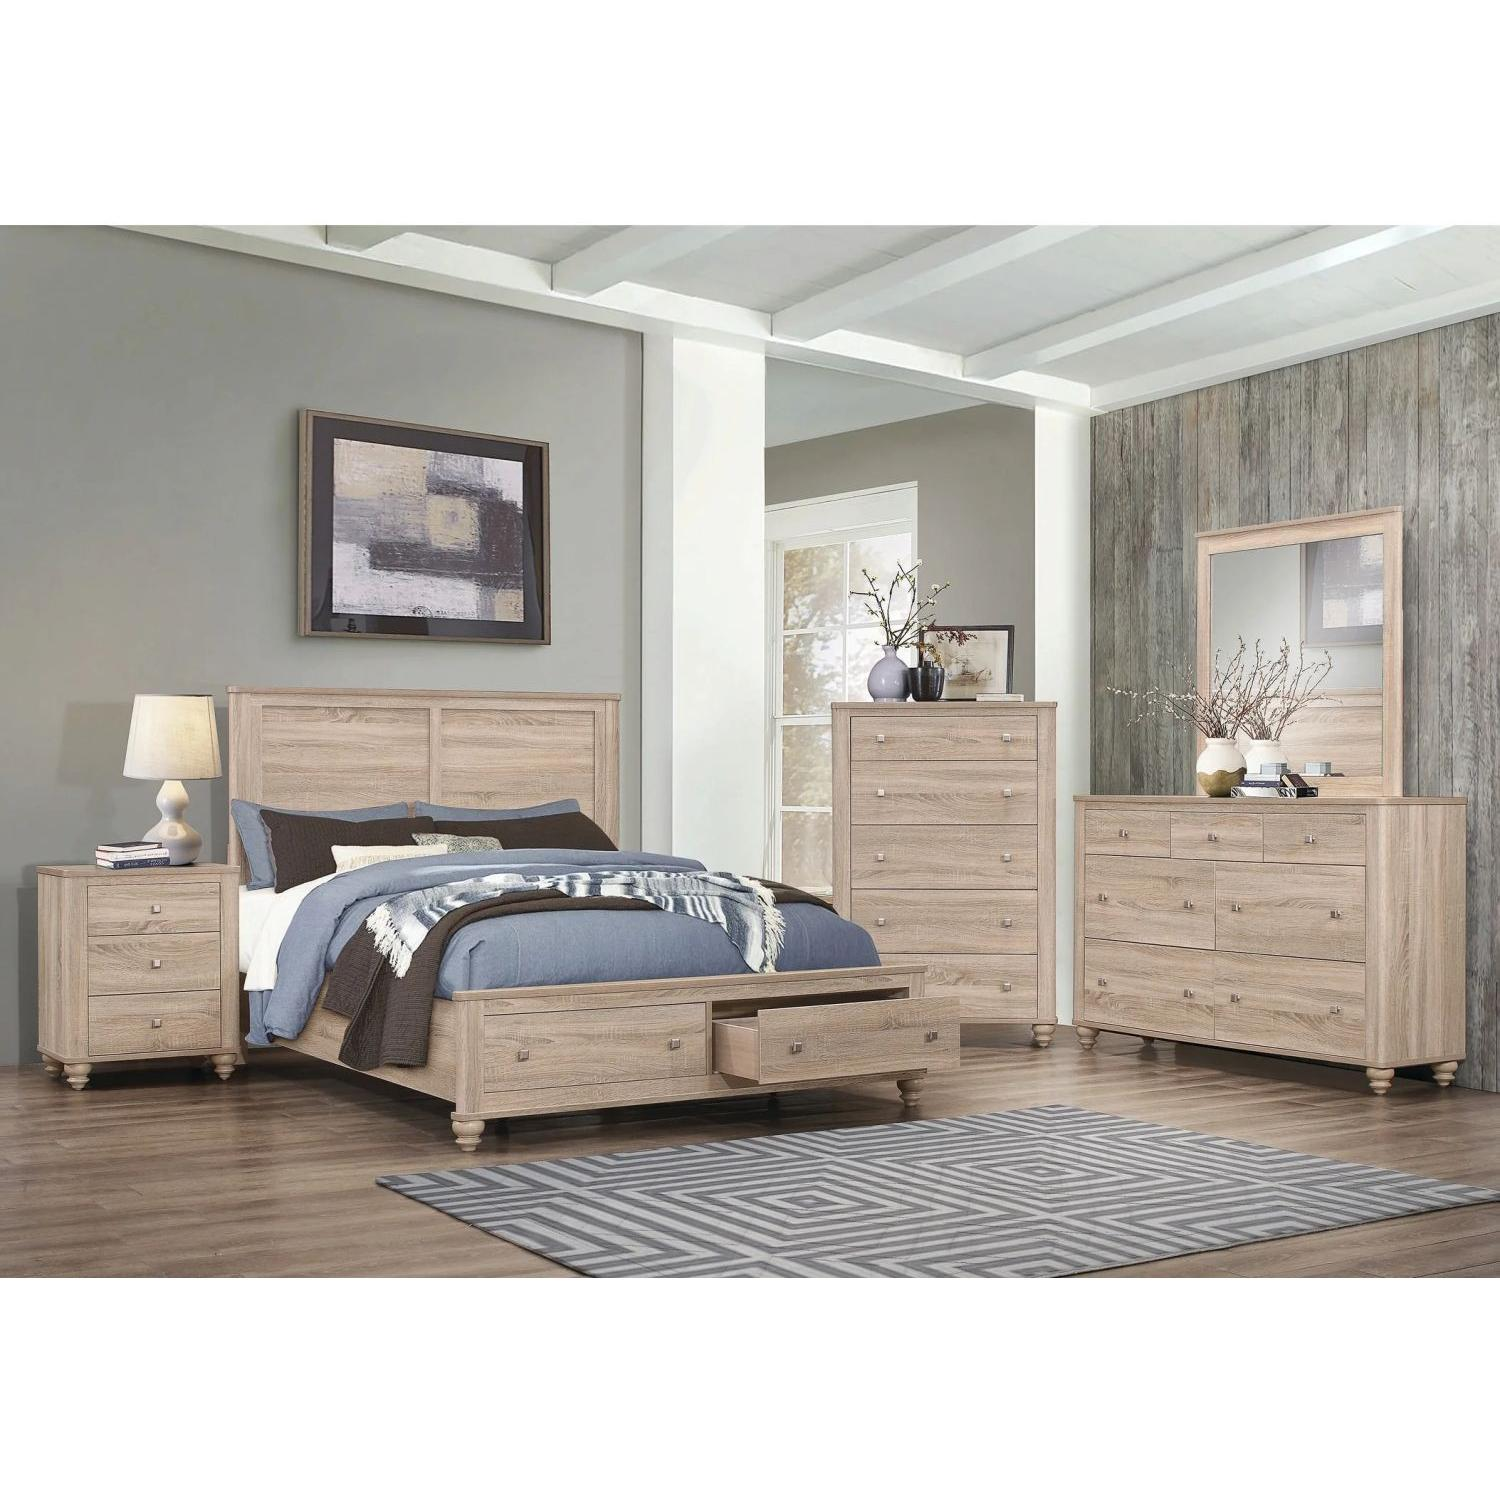 5-Drawer Chest in Natural Finish - image-5